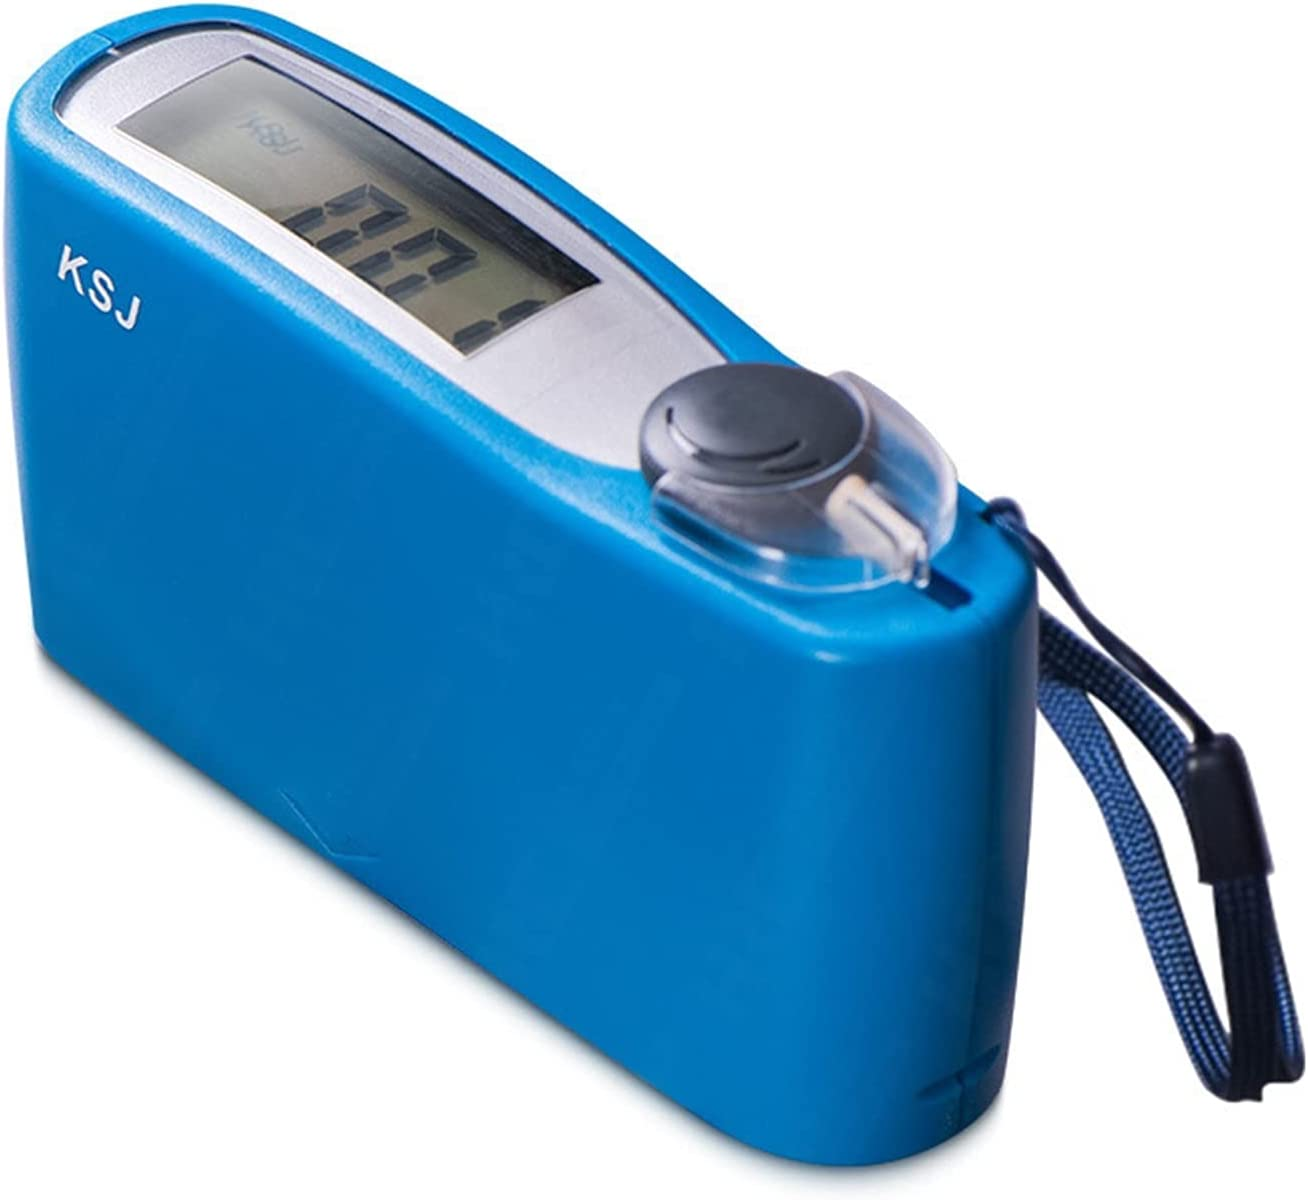 HAILAN-H Color Analyzer supreme Microporous Gloss Meter Sm Shaped Curved Fixed price for sale